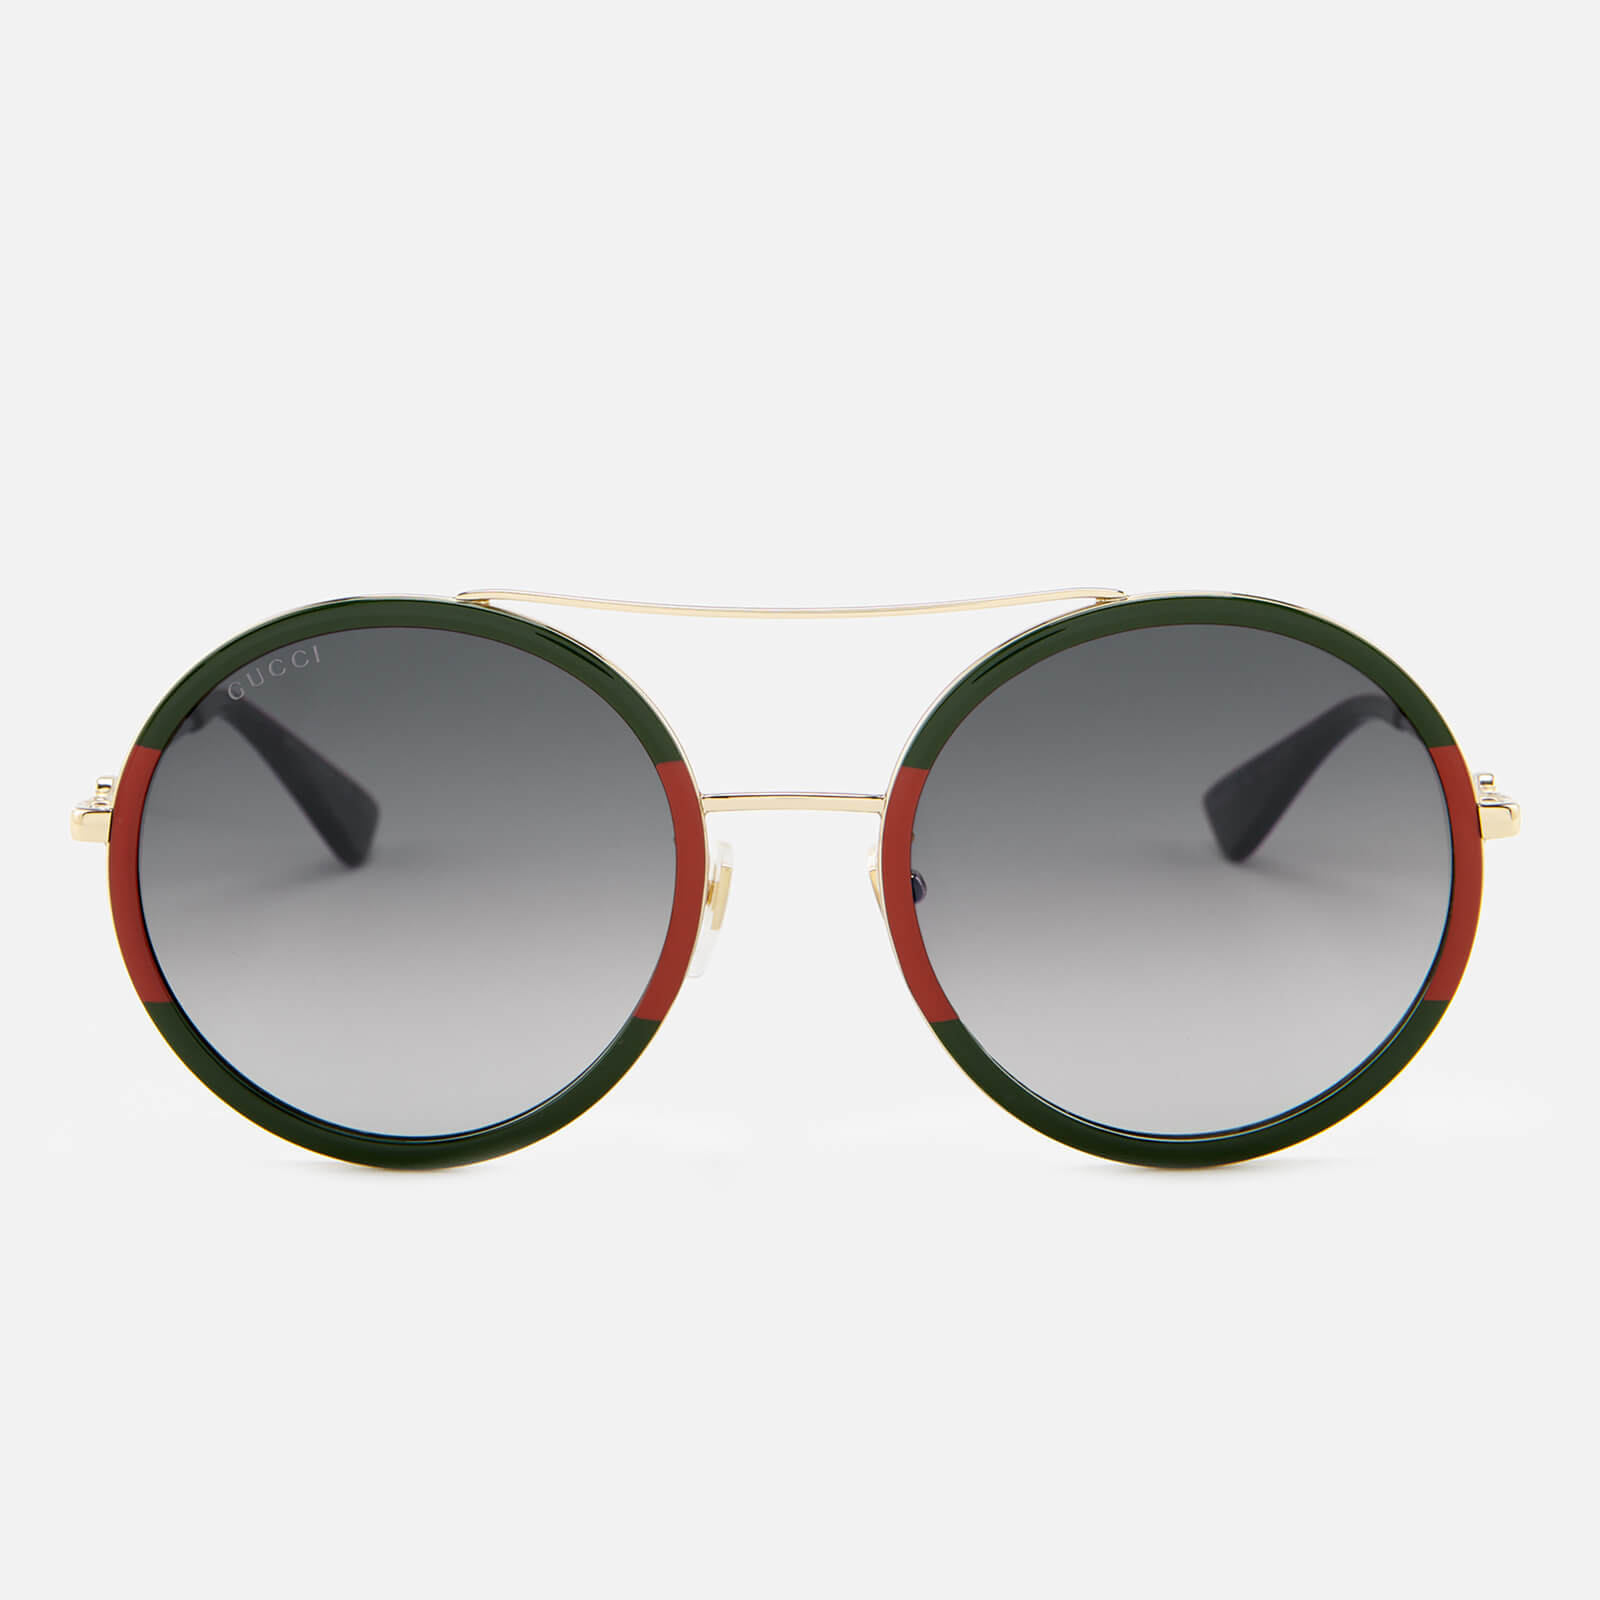 24cc1c7b6a4 Gucci Women s Round Frame Sunglasses - Gold Green - Free UK Delivery over  £50